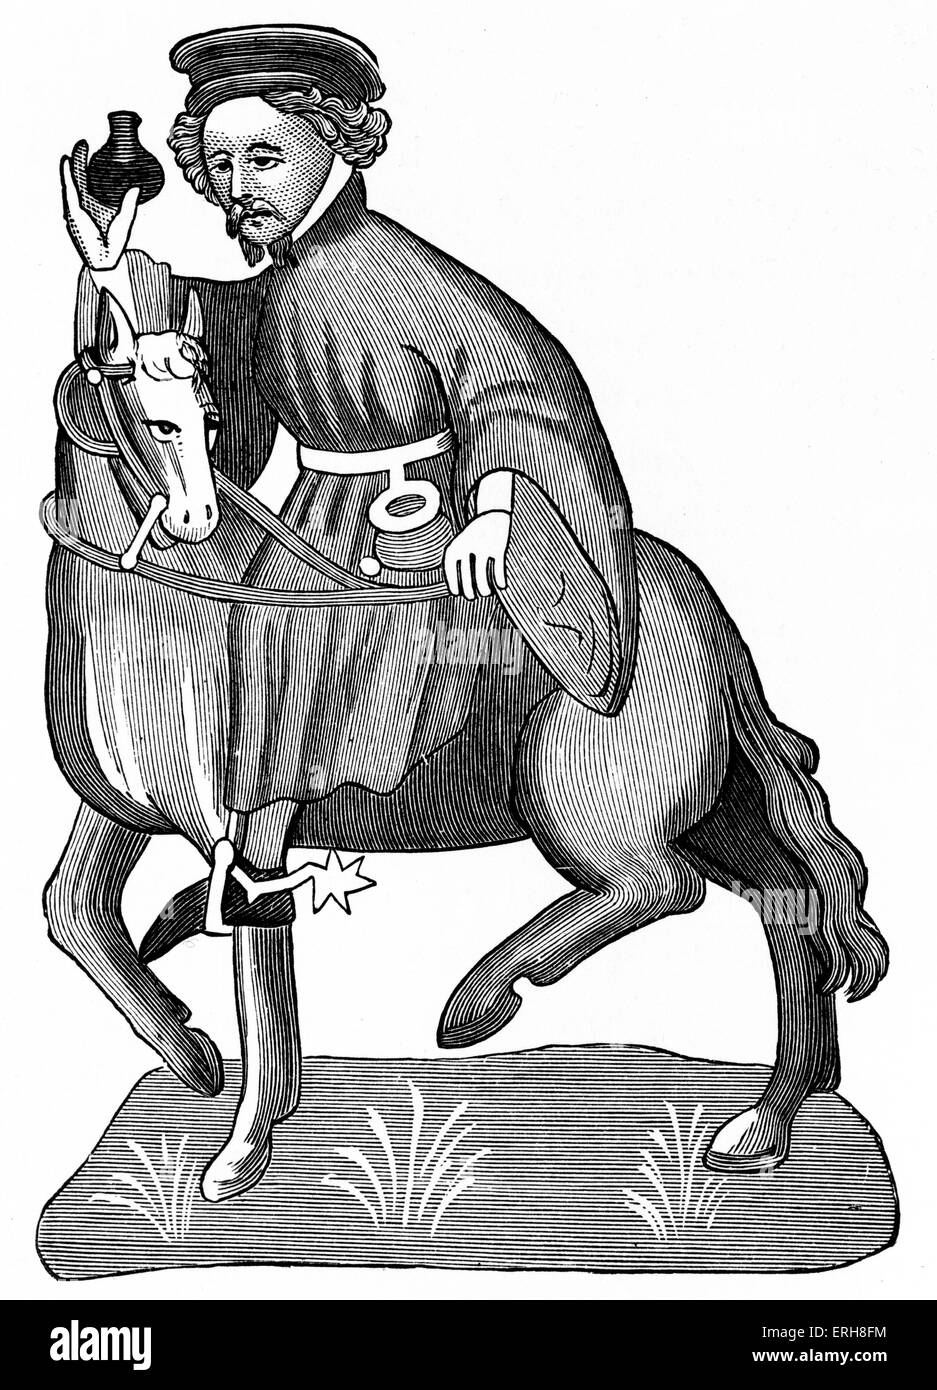 Geoffrey Chaucer ' s Canterbury Tales - The Manciple on horseback.  English poet, c. 1343-1400. Ellesemere manuscript - Stock Image